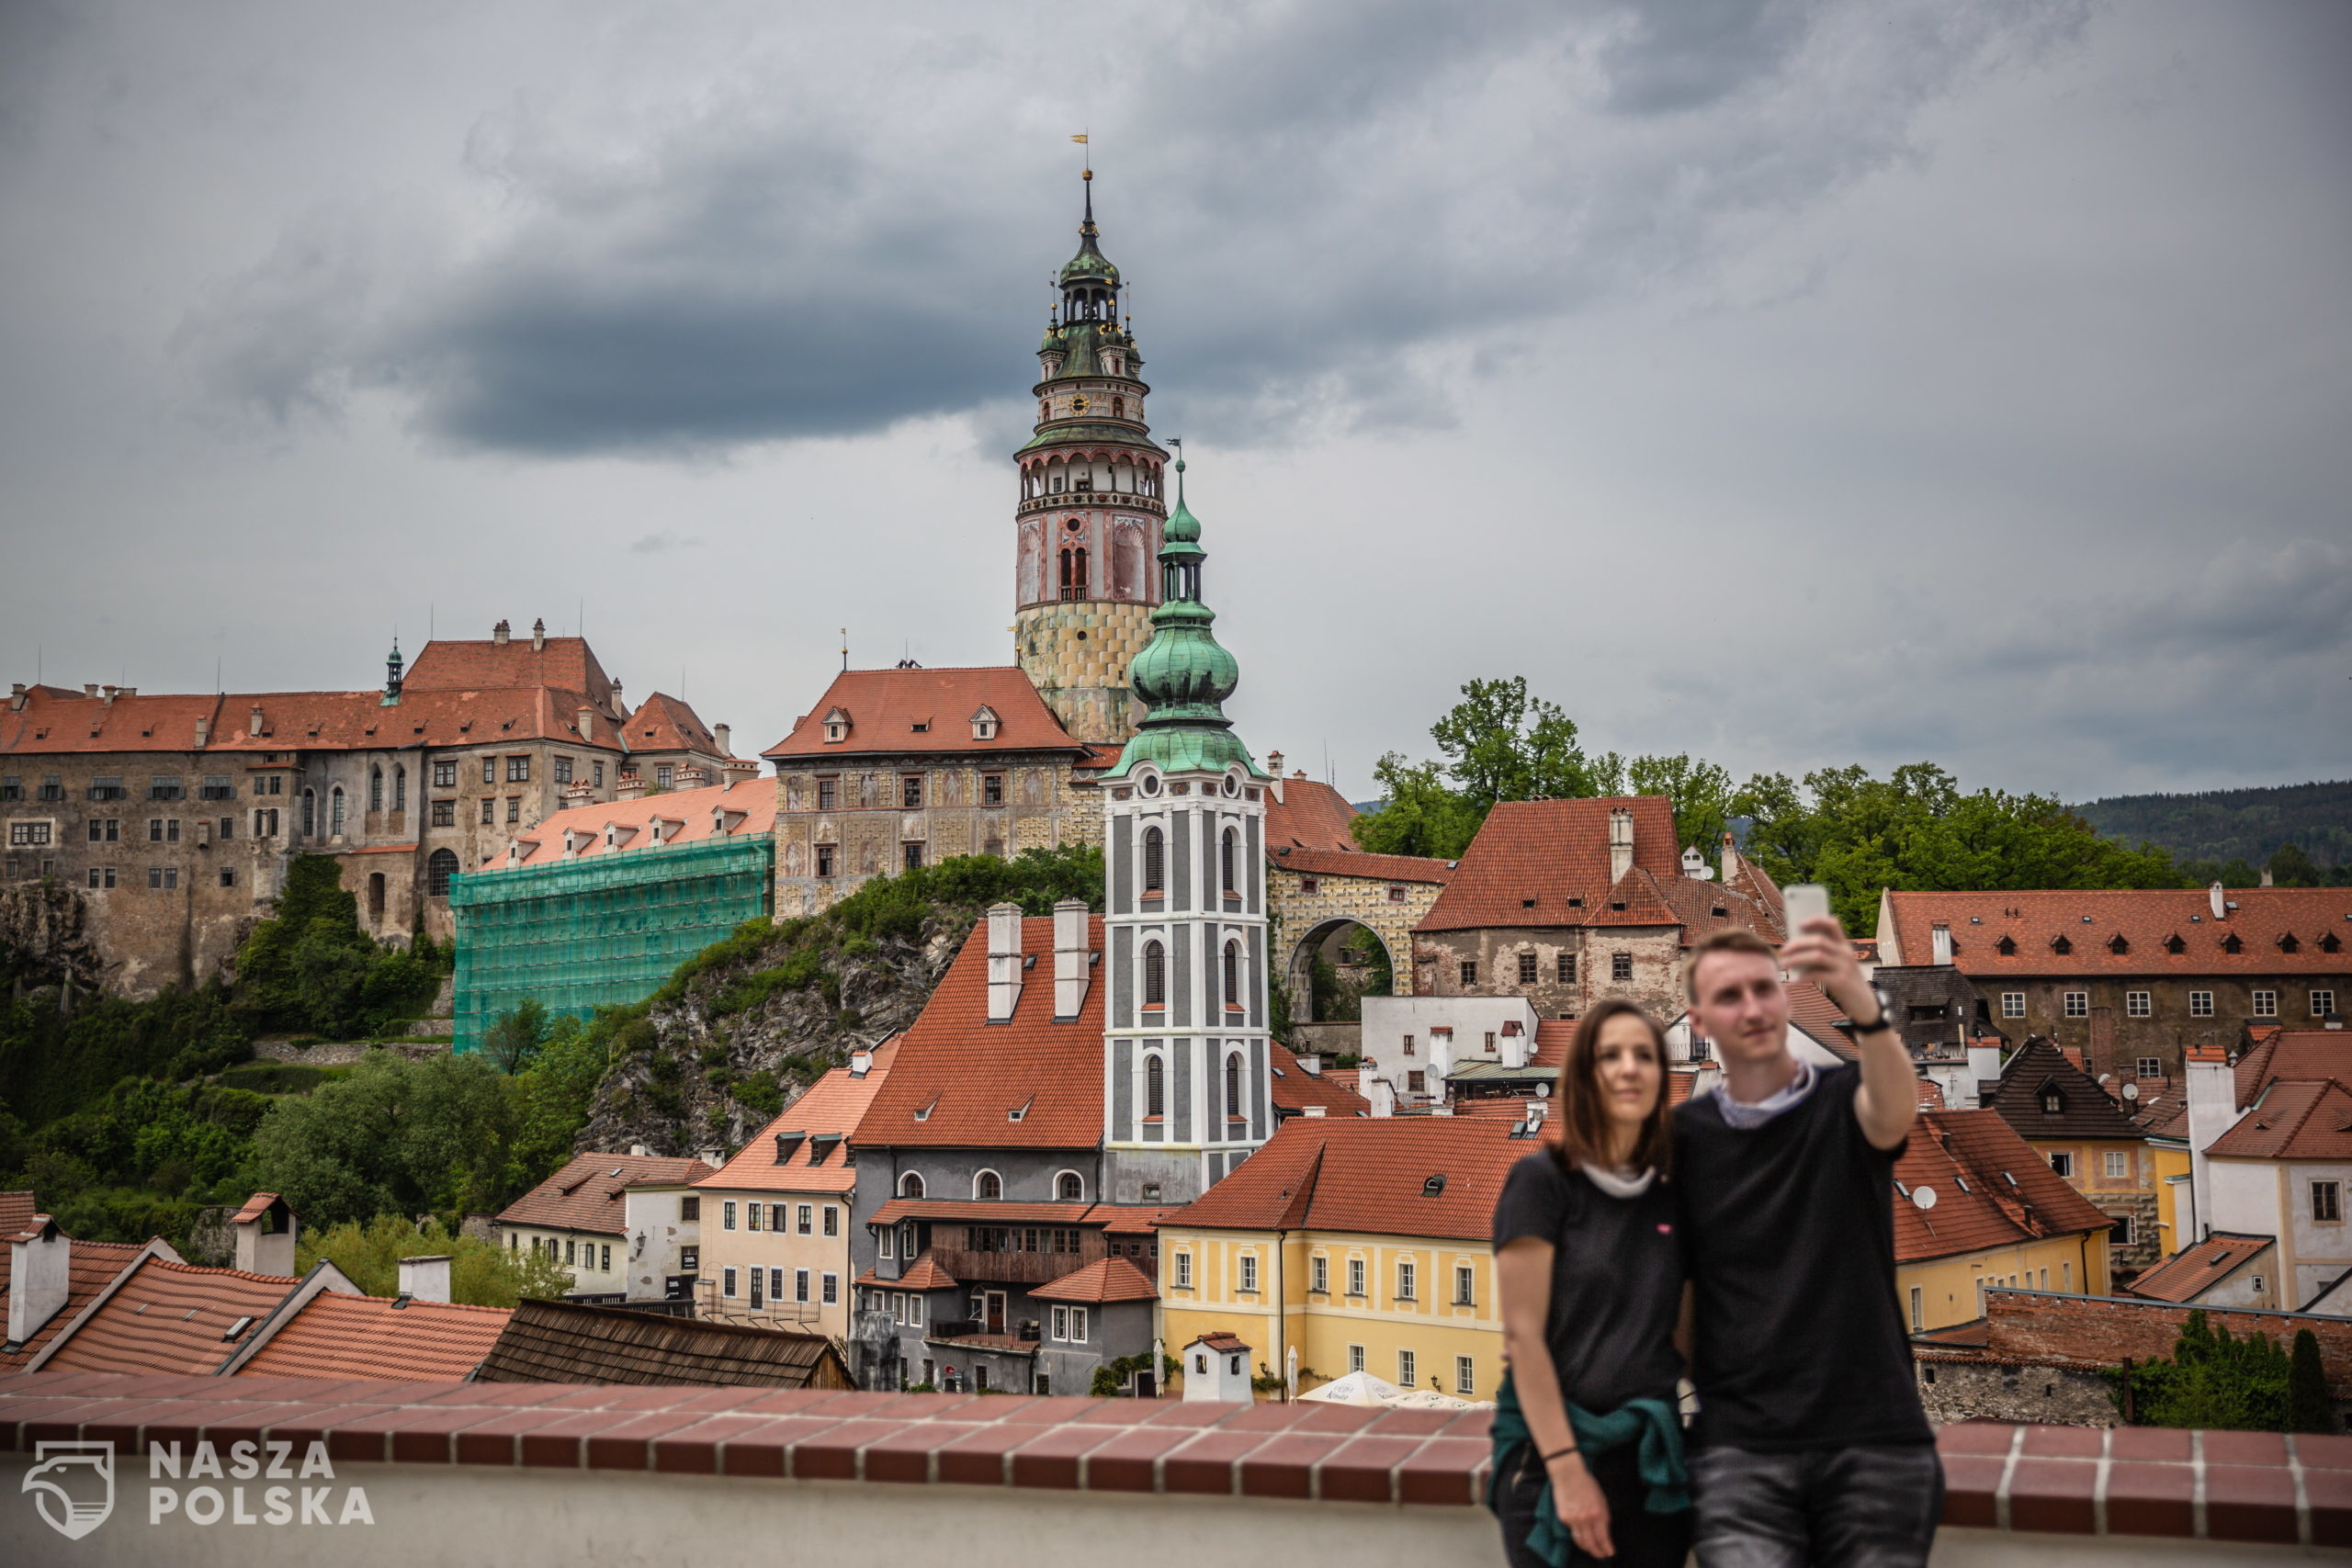 epa08438217 A couple takes selfie at almost empty vantage point above the old town of Cesky Krumlov, UNESCO World Culture Heritage site, Czech Republic, 22 May 2020. According to local media, more than 15.000 tourists from Asia arrived in the South Bohemian region, where is located the popular tourist destination Cesky Krumlov, on January 2020. Due to the pandemic COVID-19 disease caused by the SARS-CoV-2 coronavirus, which closed borders and restricted travel, the number of accommodated tourists in southern Bohemia fell by 30 percent in the first quarter. The region is the most affected in the country.  EPA/MARTIN DIVISEK  Dostawca: PAP/EPA.